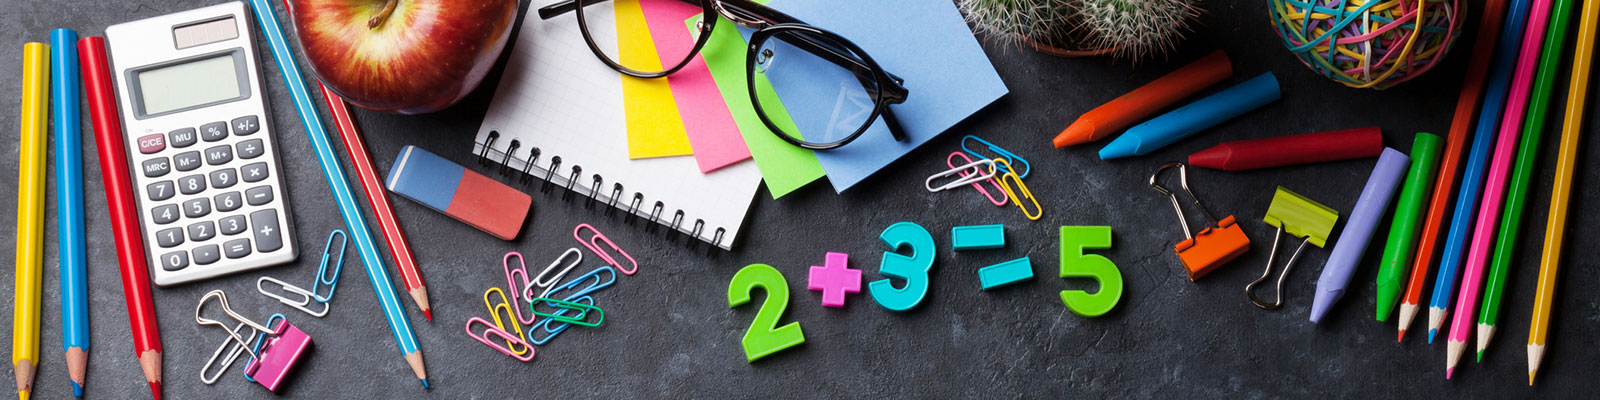 colorful school supplies and math